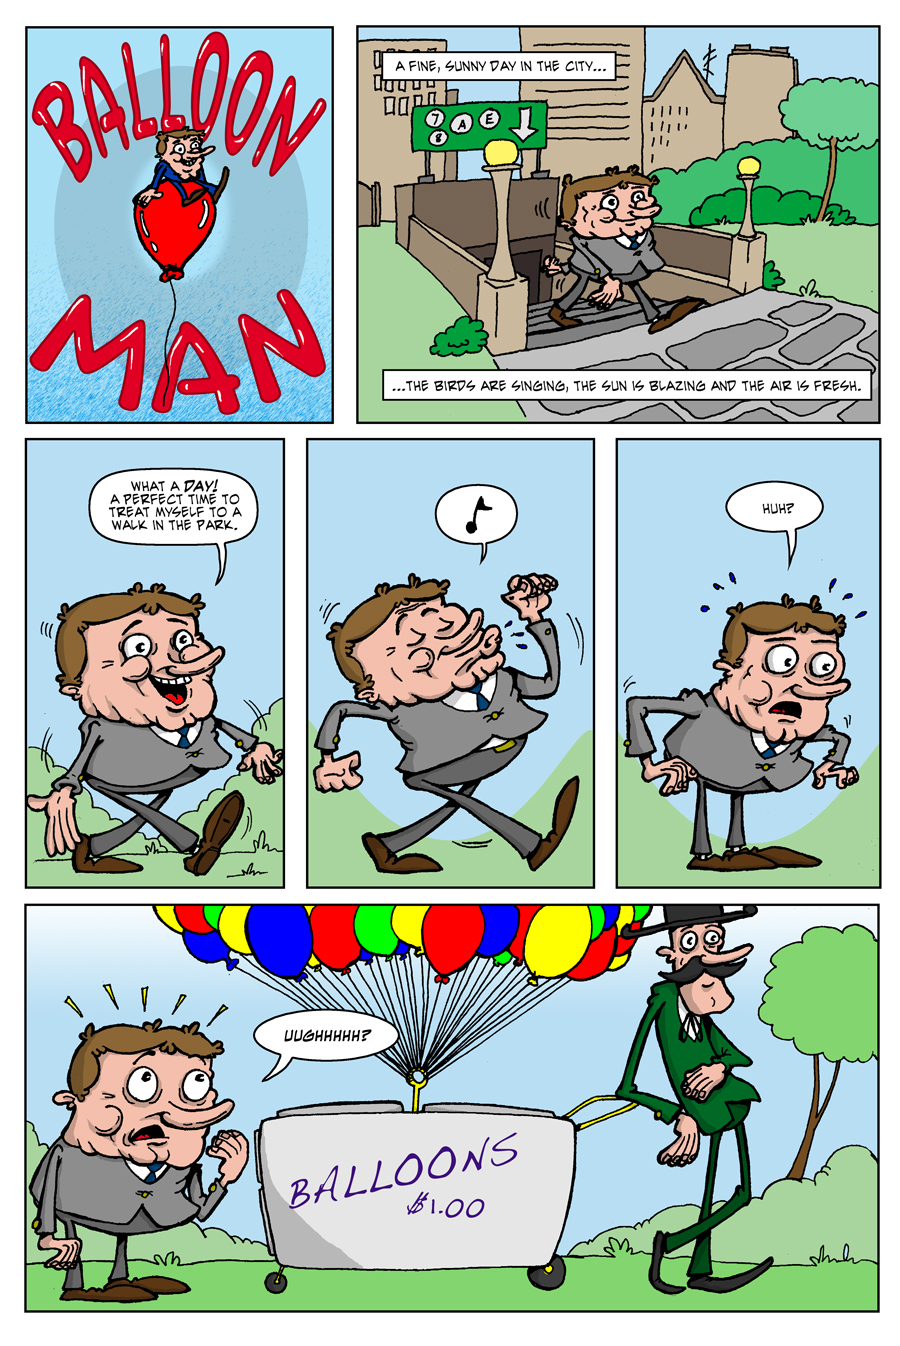 Balloon-Man-Page-1.jpg